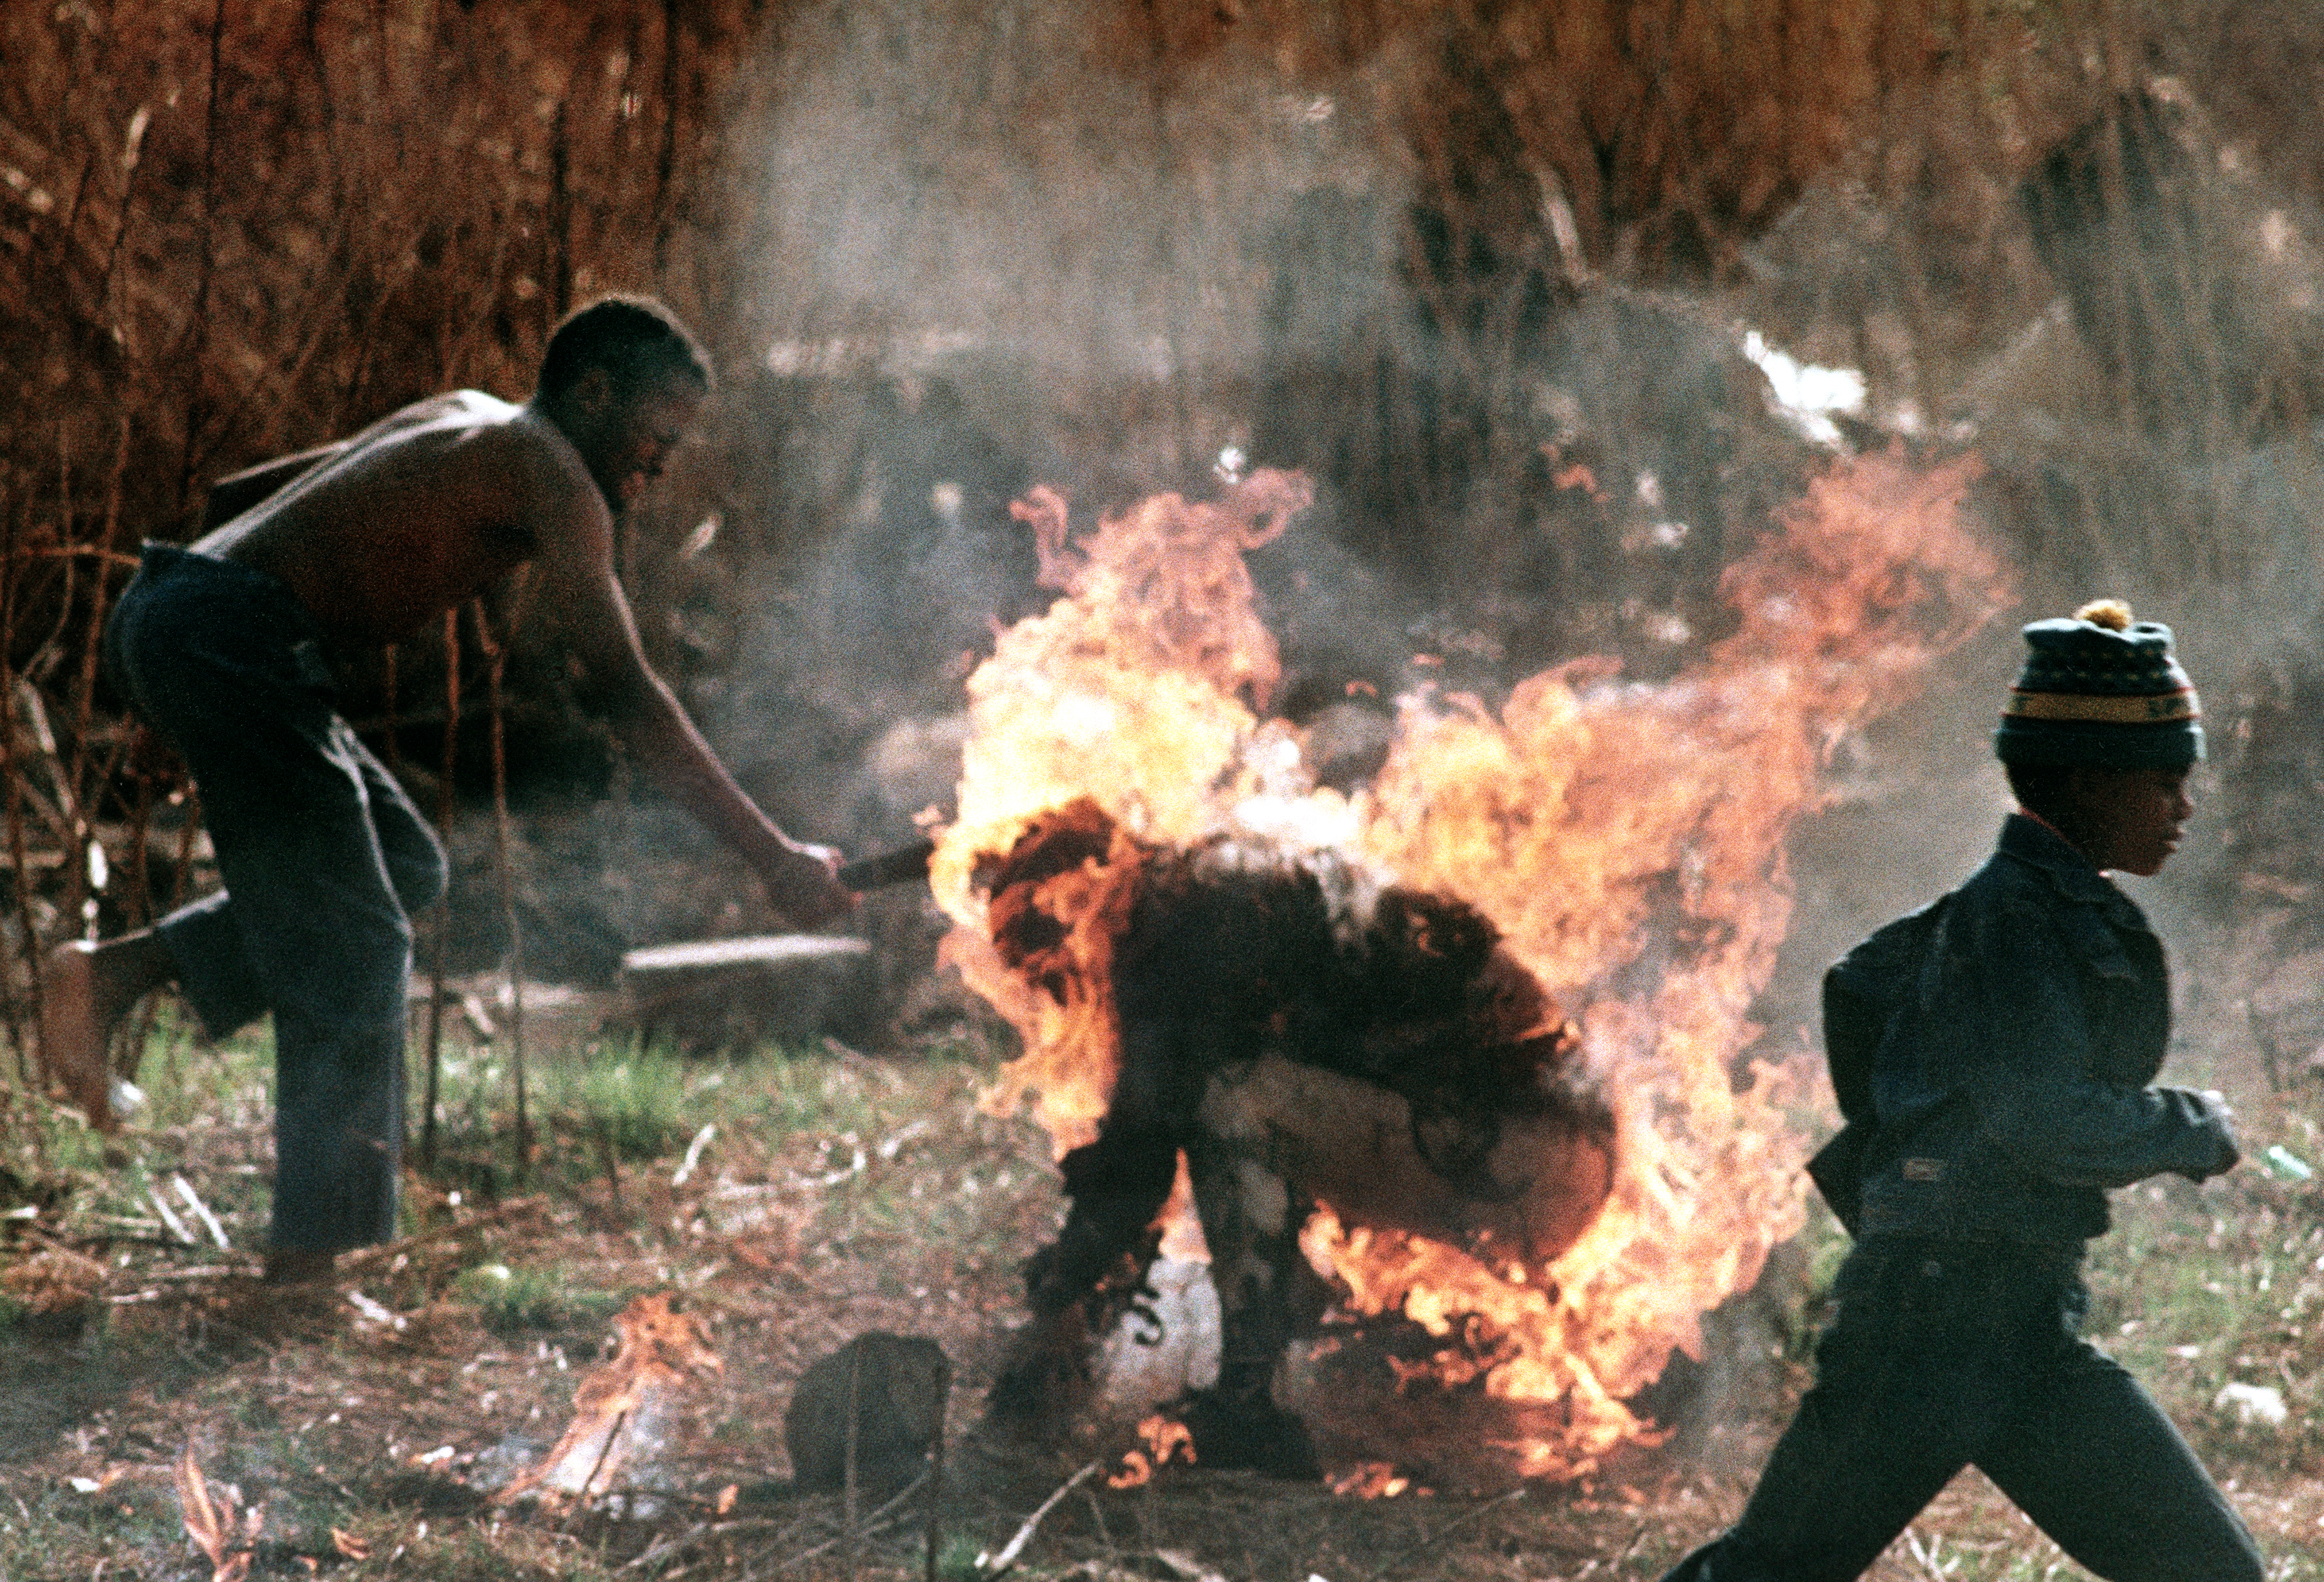 The burning body of a man identified as a Zulu Inkatha supporter is clubbed by a follower of the rival African National Congress during factional violence in Soweto, South Africa, on Sept. 15, 1990. (AP Photo/Greg Marinovich)